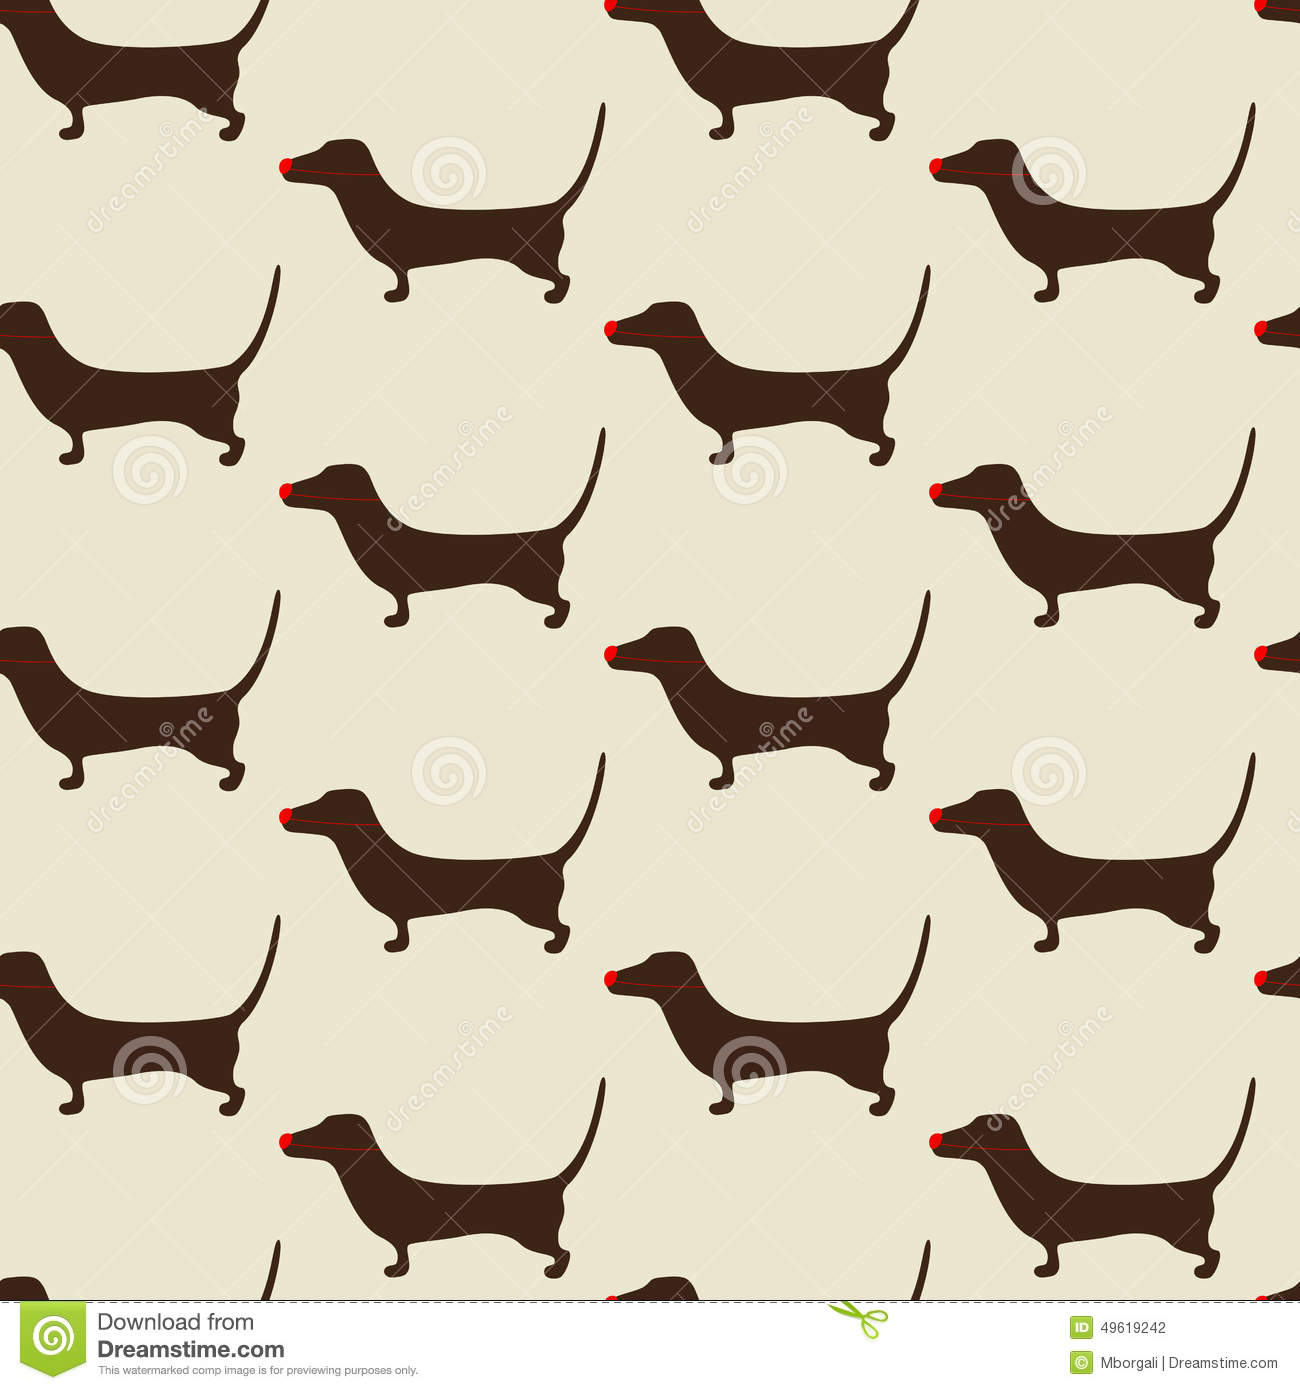 Cute Iphone Wallpaper Patterns Christmas Dachshund Pattern Stock Vector Image 49619242